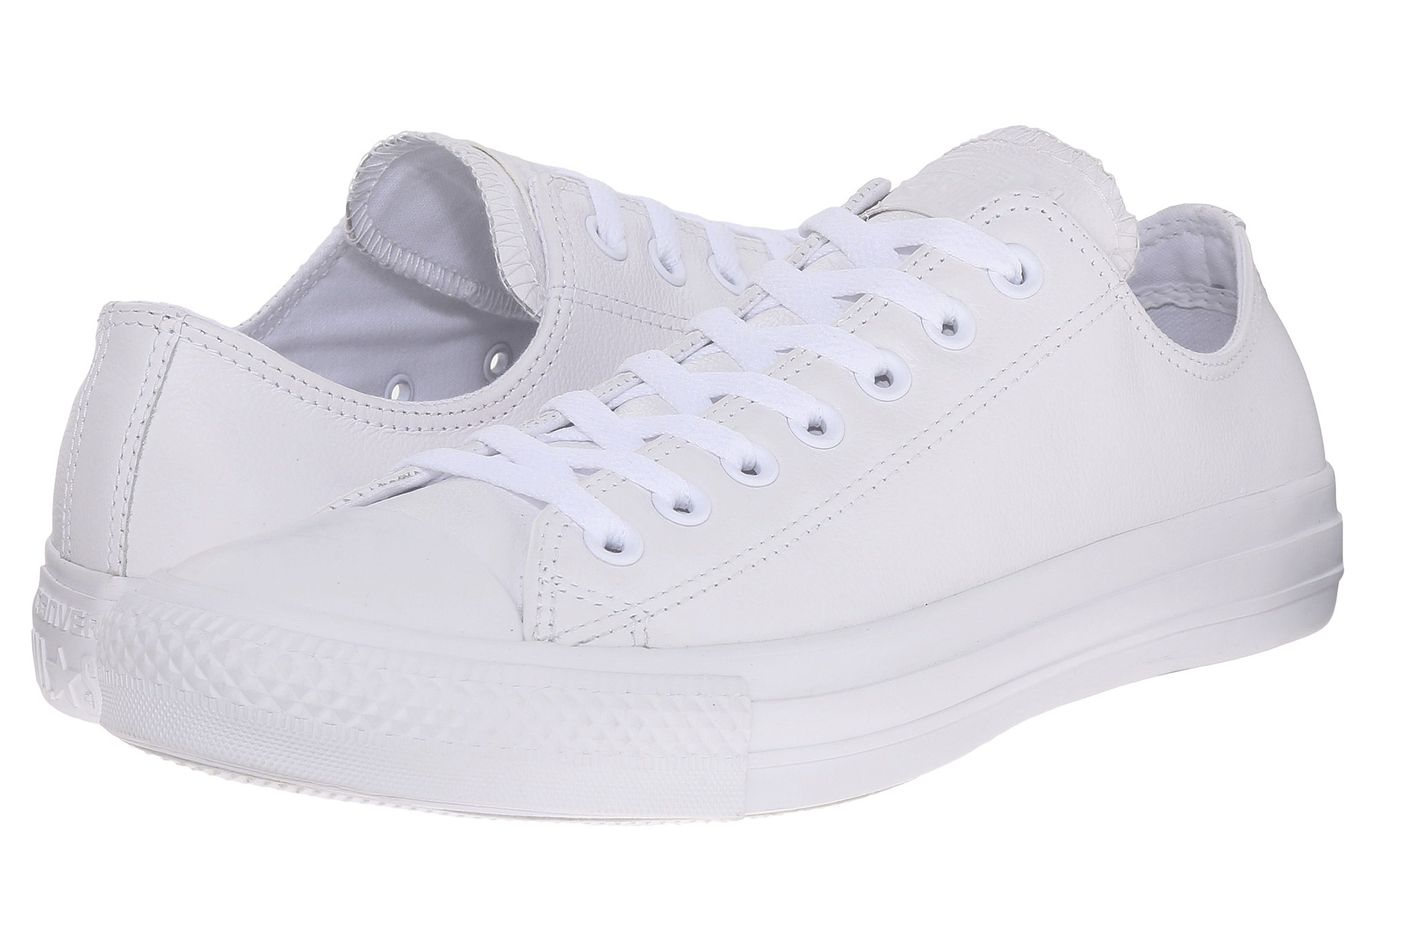 c980efdb98c The Best White Sneakers to Get a Sneaker Freak